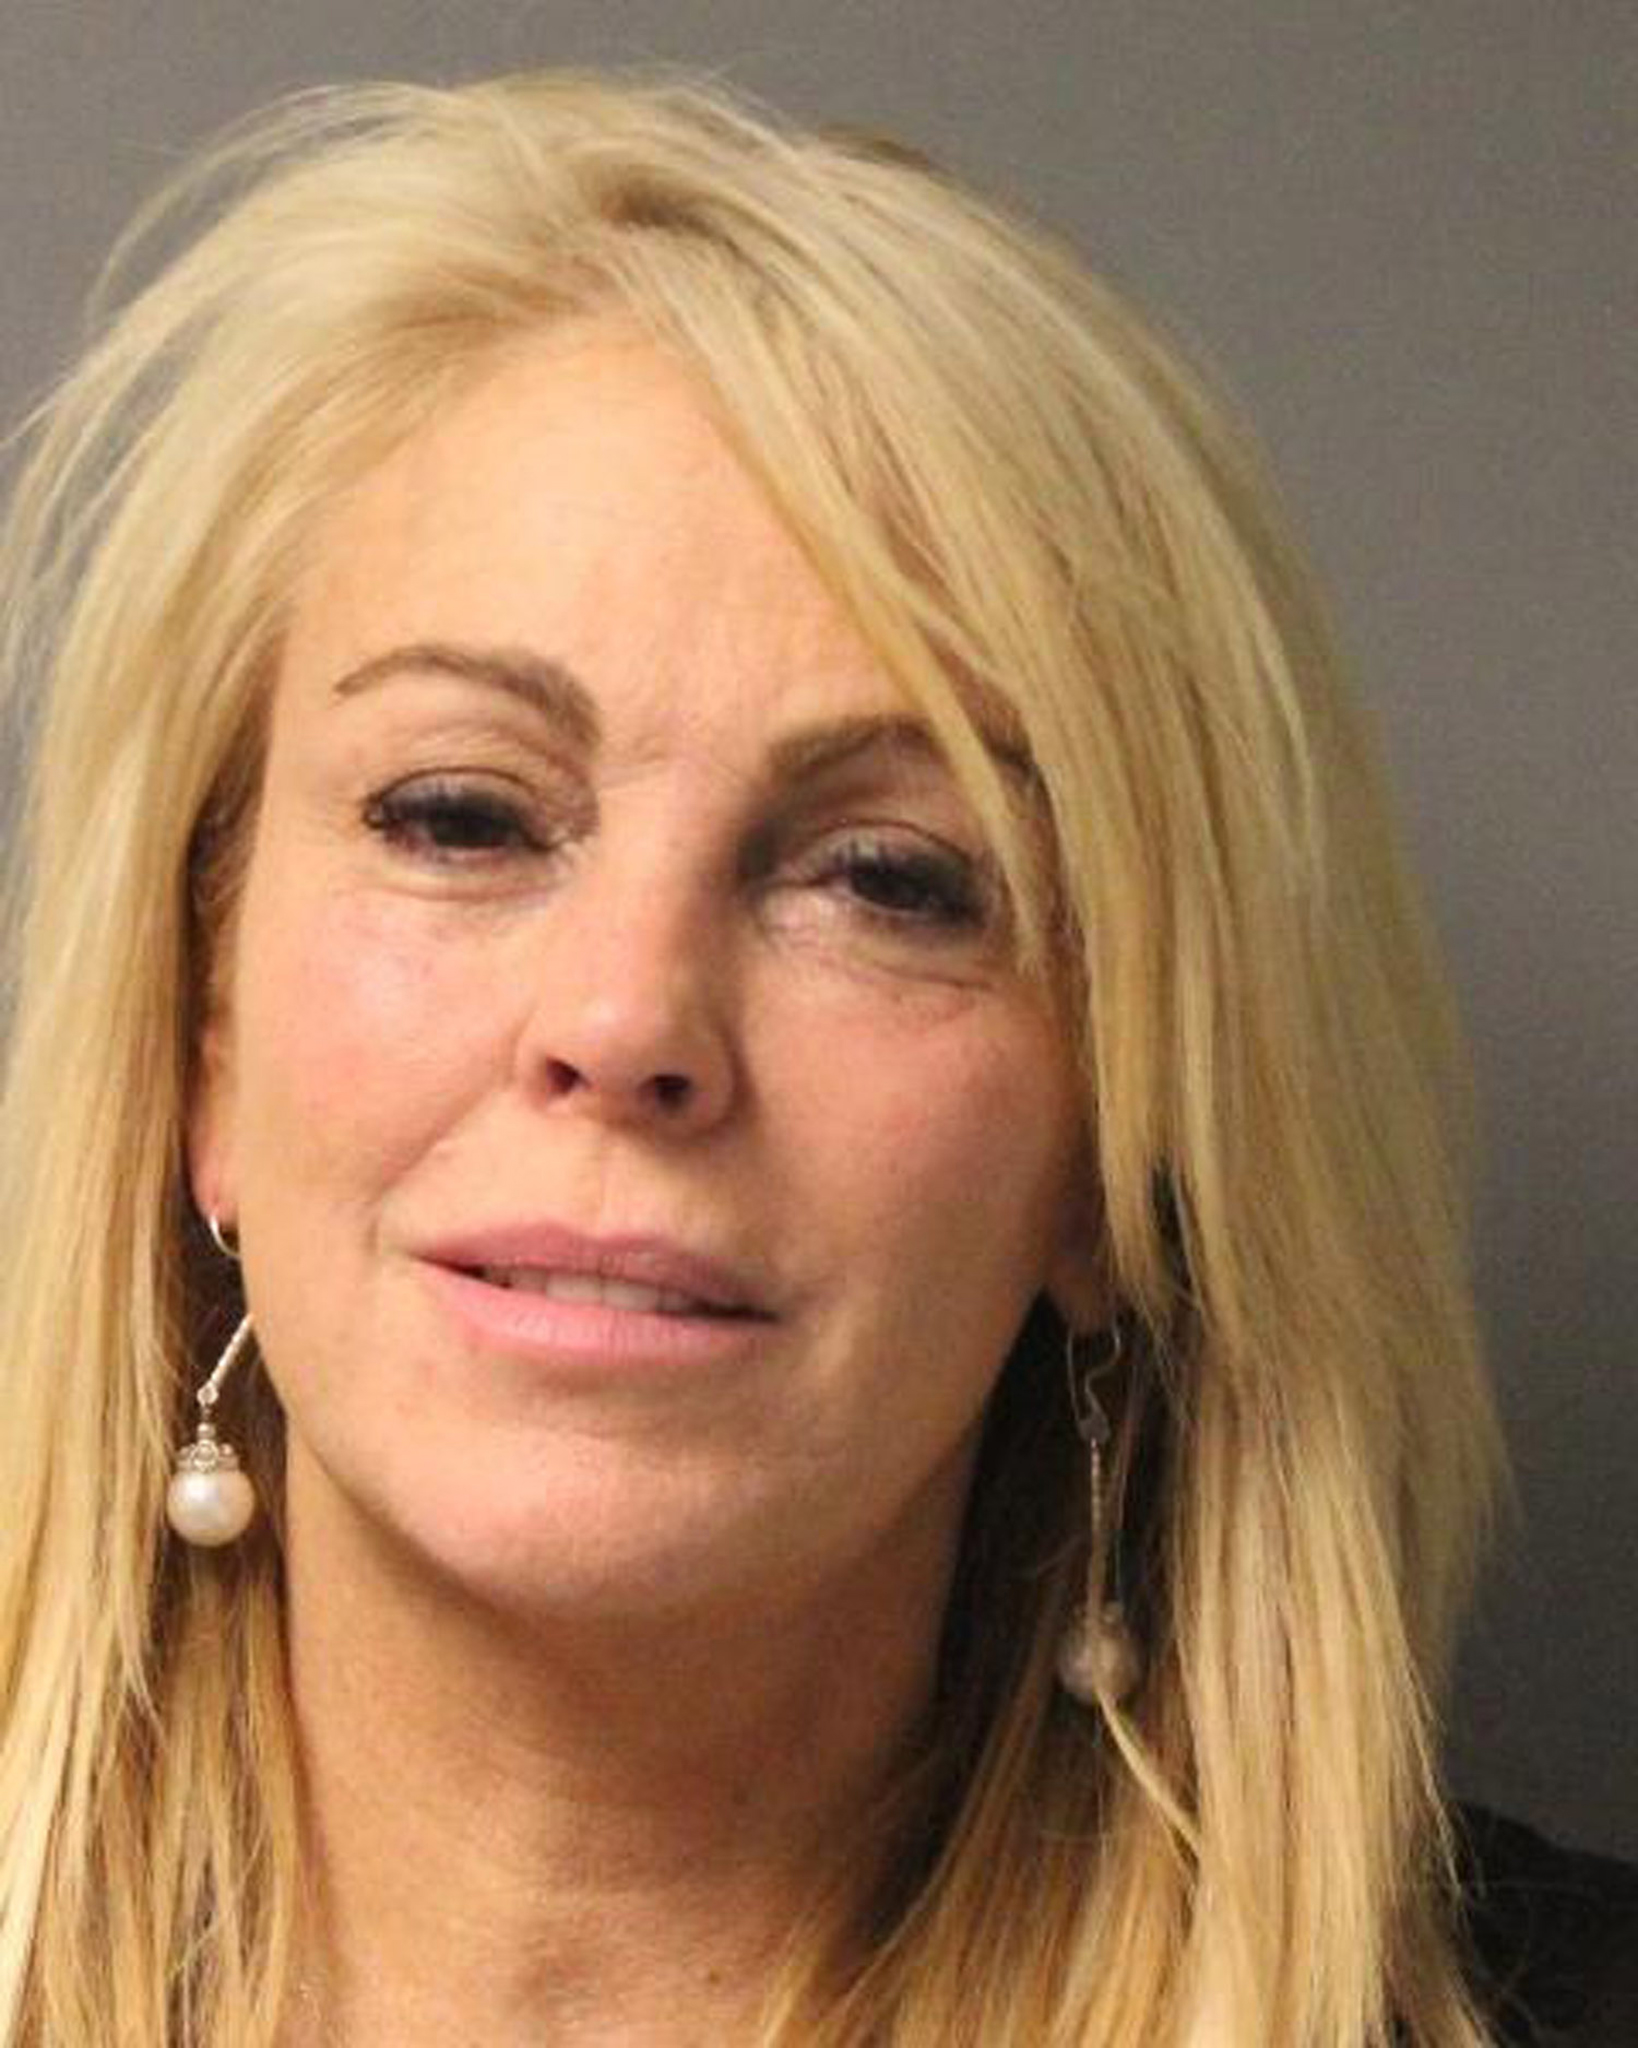 Dina Lohan's mug shot. (Splash News)